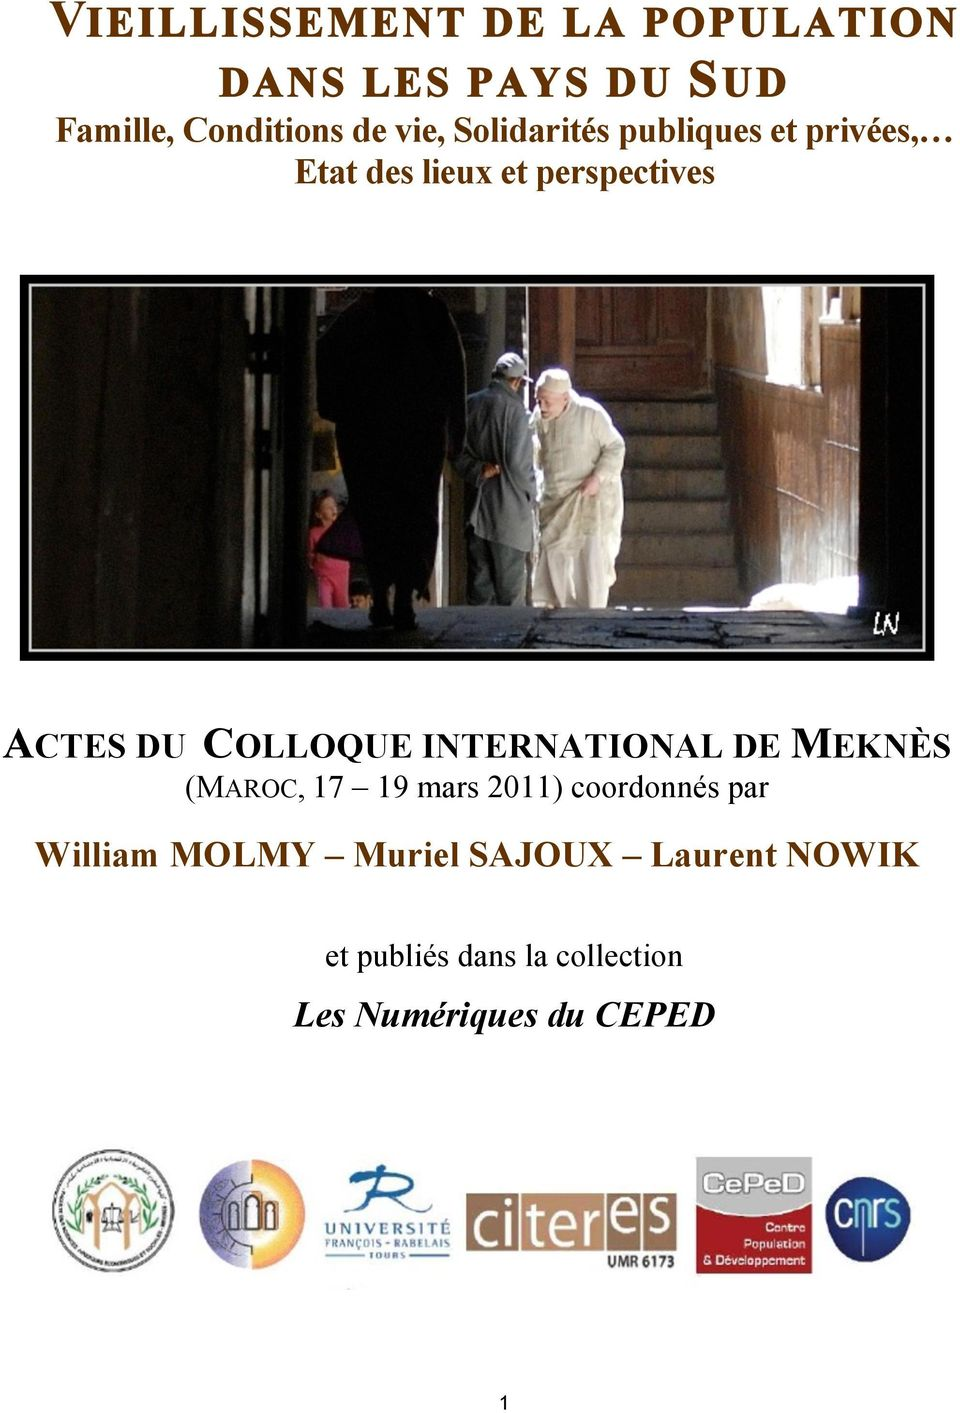 COLLOQUE INTERNATIONAL DE MEKNÈS (MAROC, 17 19 mars 2011) coordonnés par William